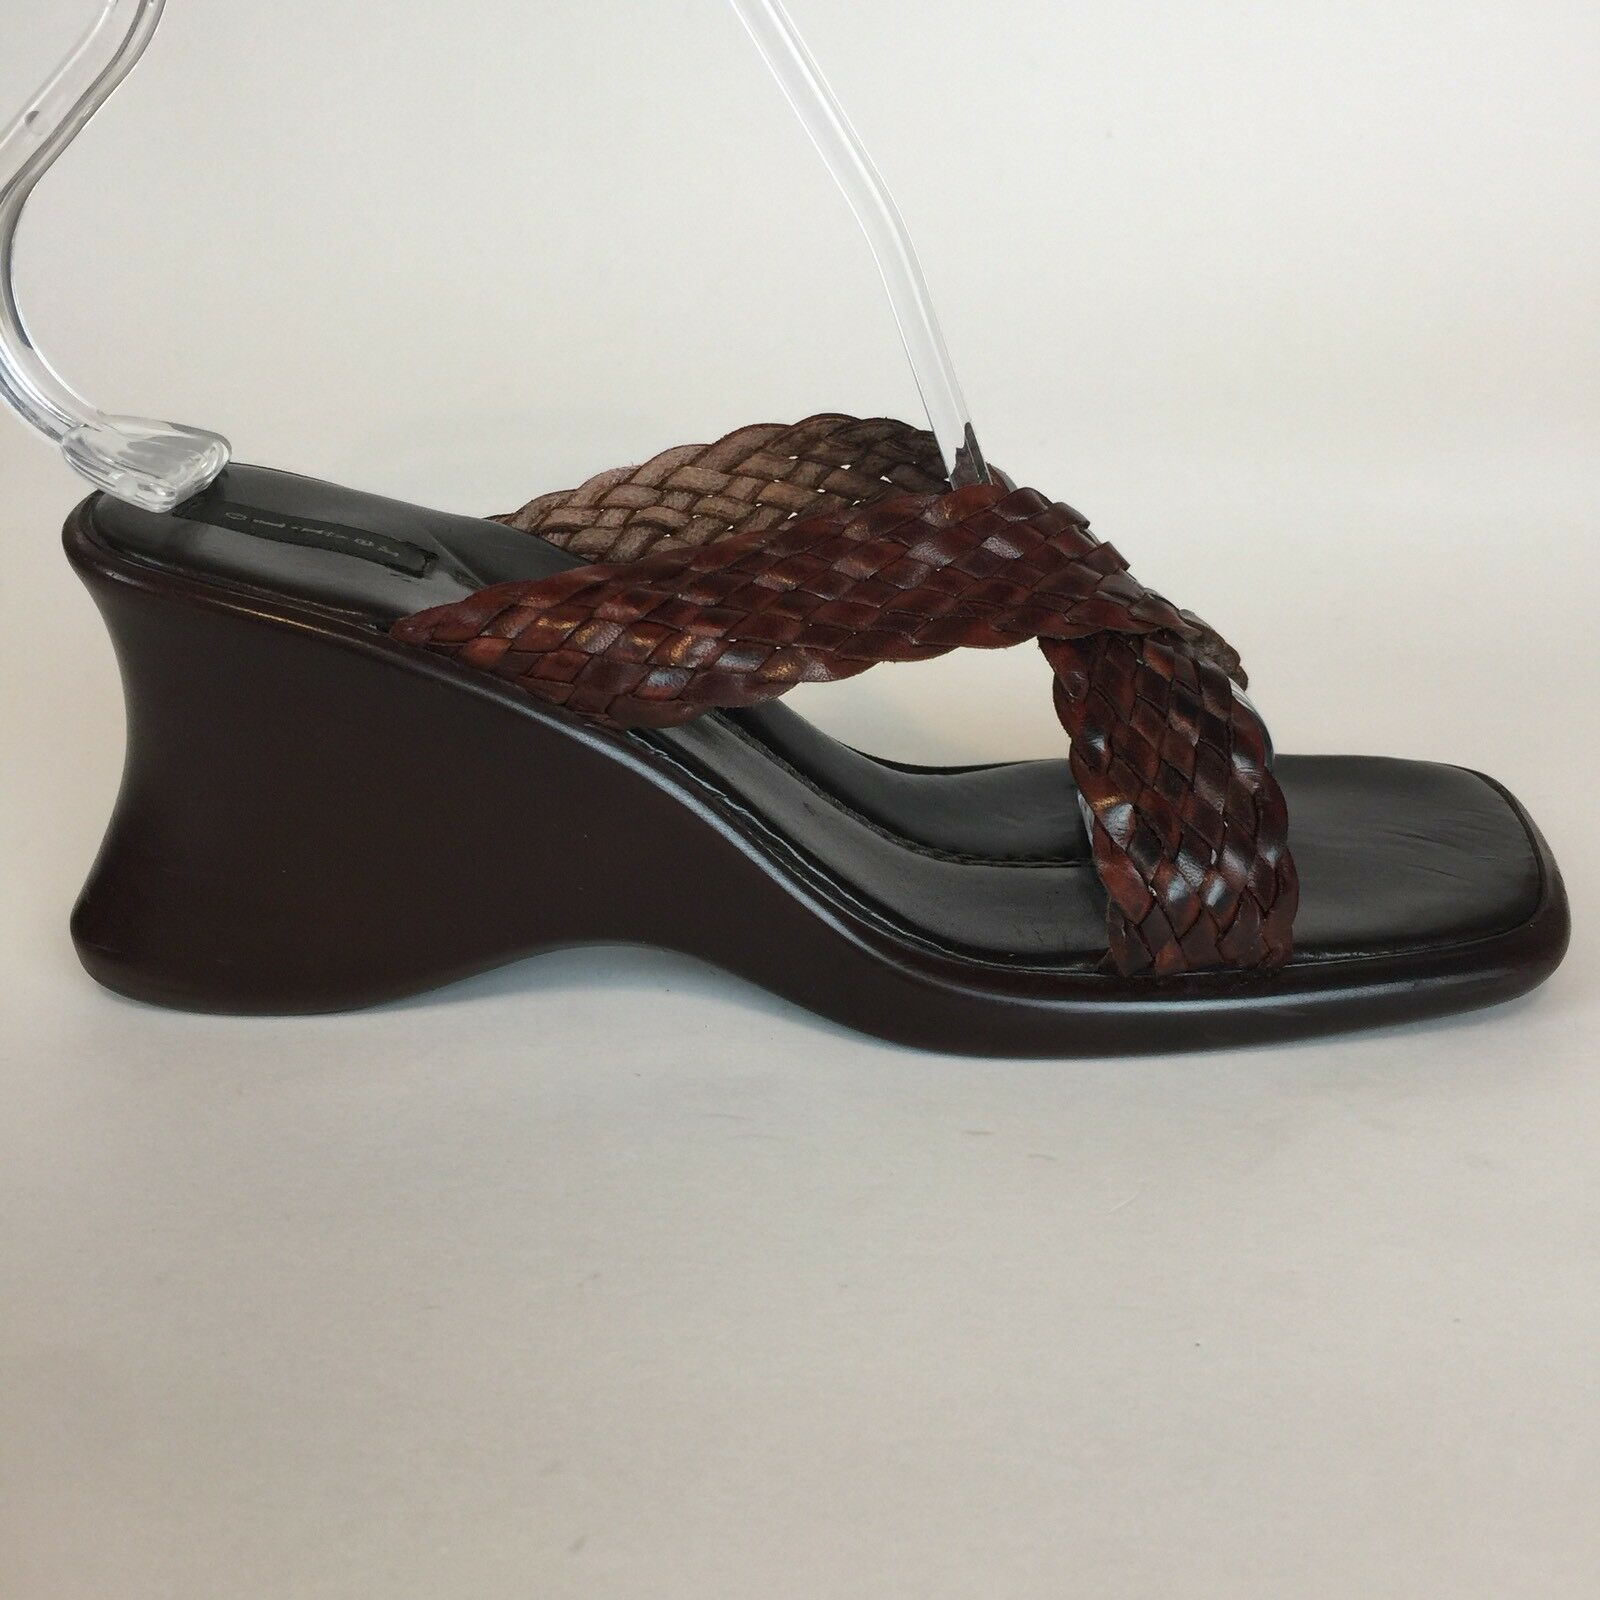 Sz 7M - Oliver Women�s Braided Brown Leather Criss Cross Wedge Sandal Slip On